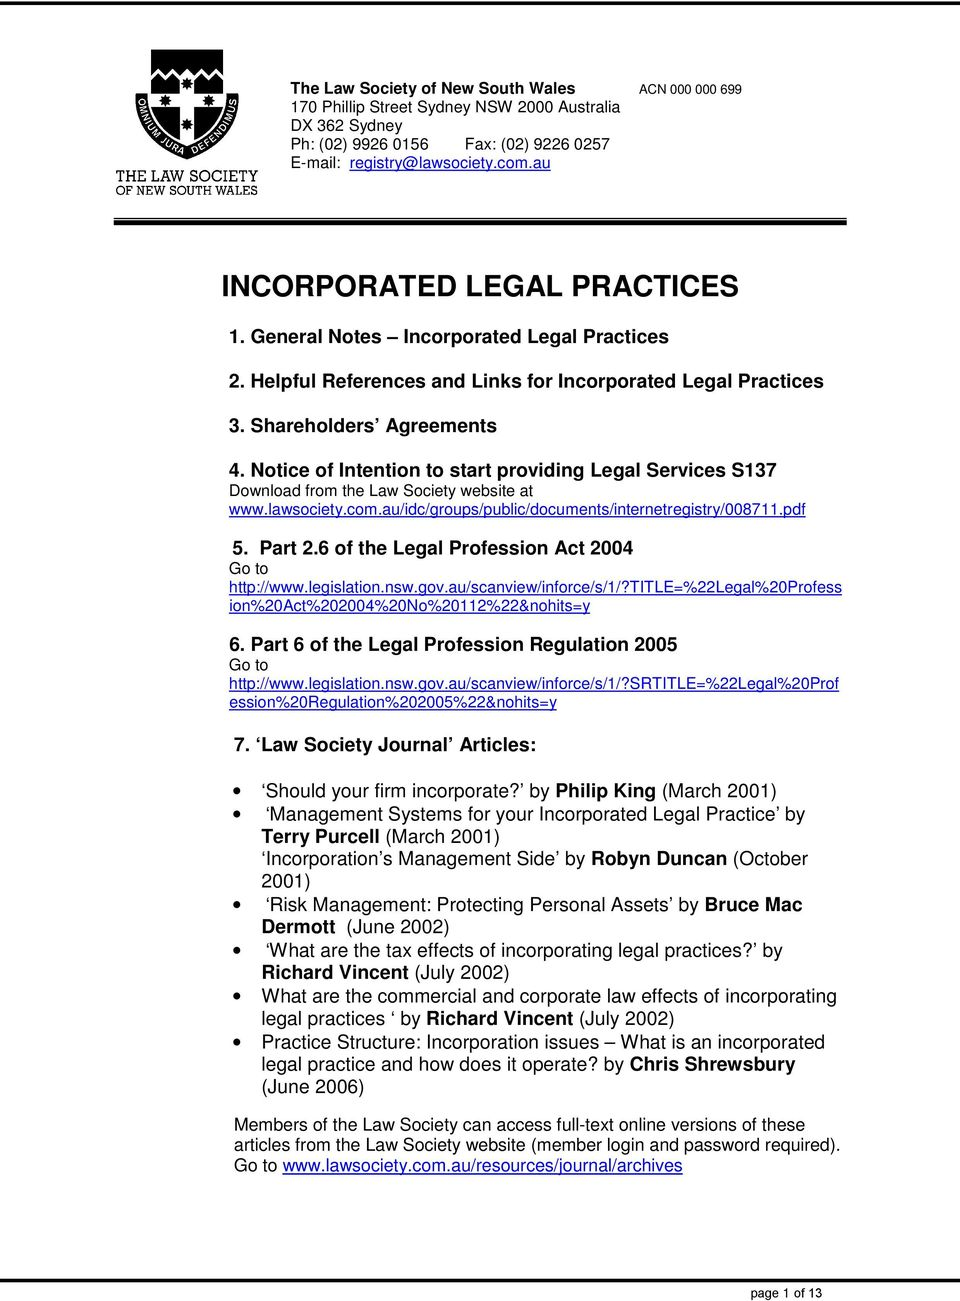 Notice of Intention to start providing Legal Services S137 Download from the Law Society website at www.lawsociety.com.au/idc/groups/public/documents/internetregistry/008711.pdf 5. Part 2.